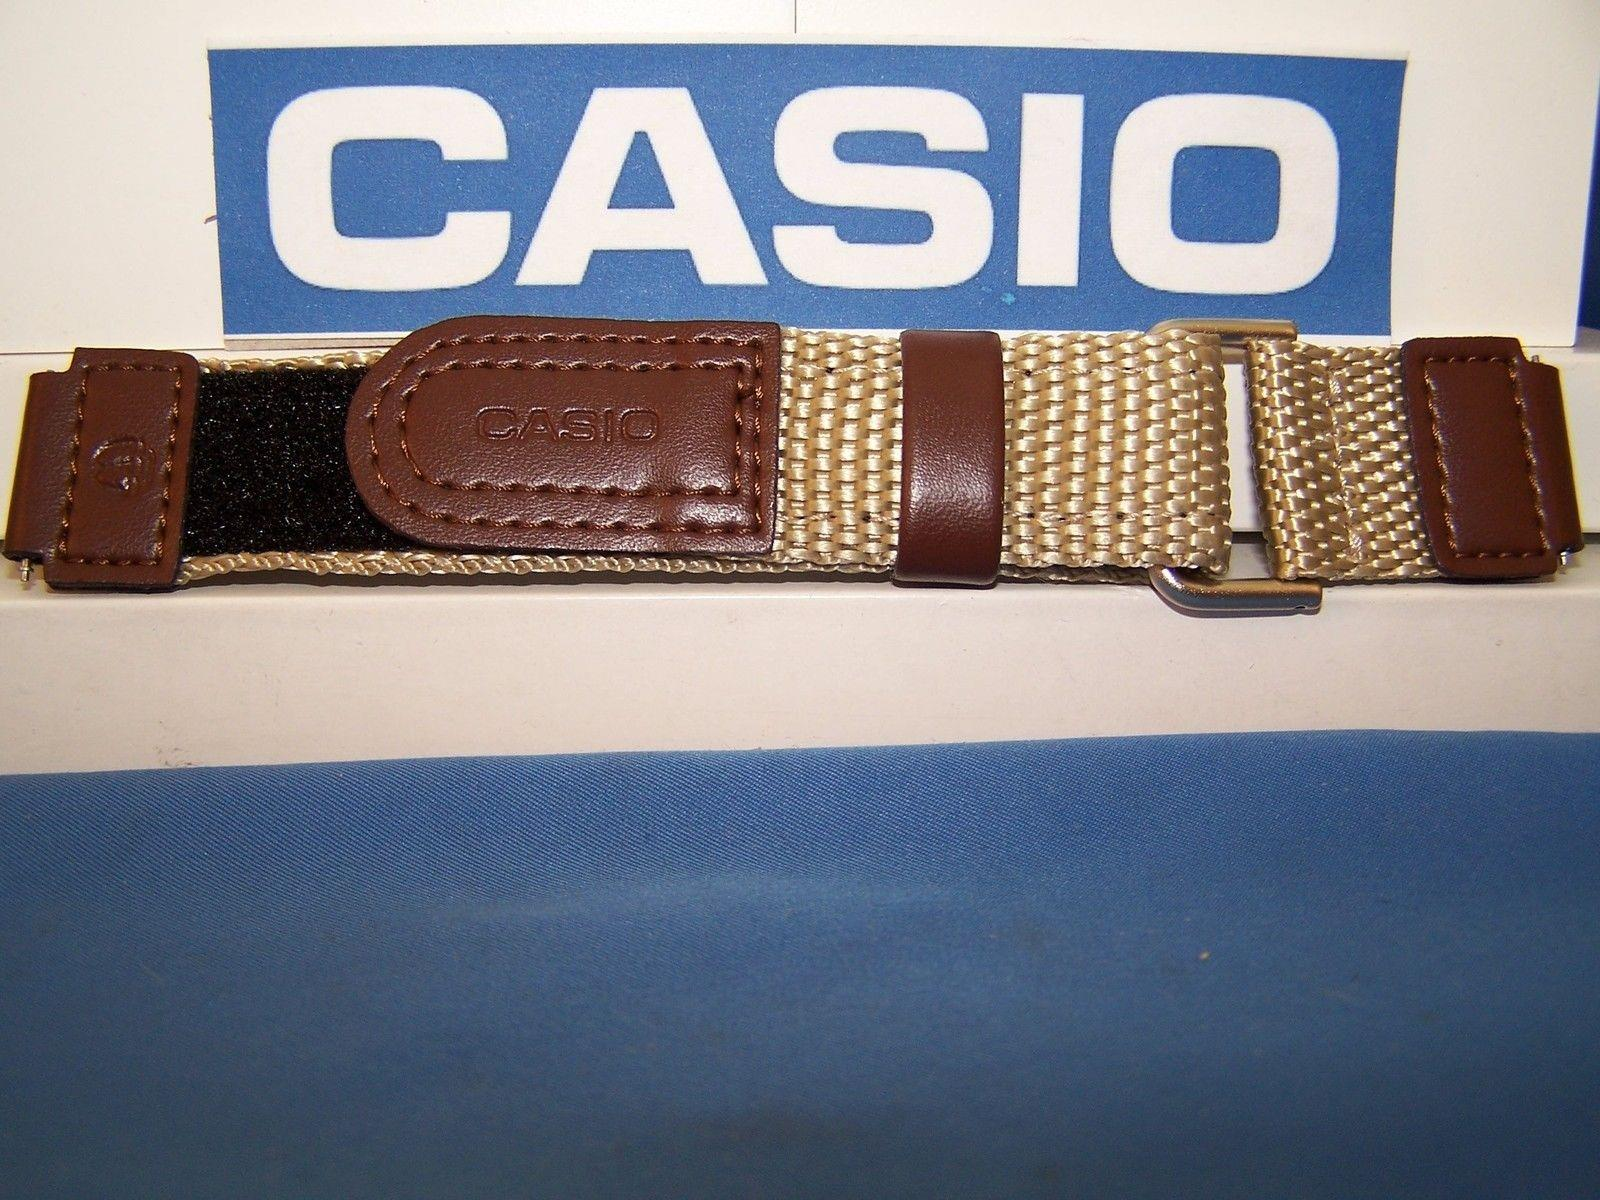 Casio watchband AW-80 V-5BW. NylonGrip Sport  Brown / Tan. With Pins